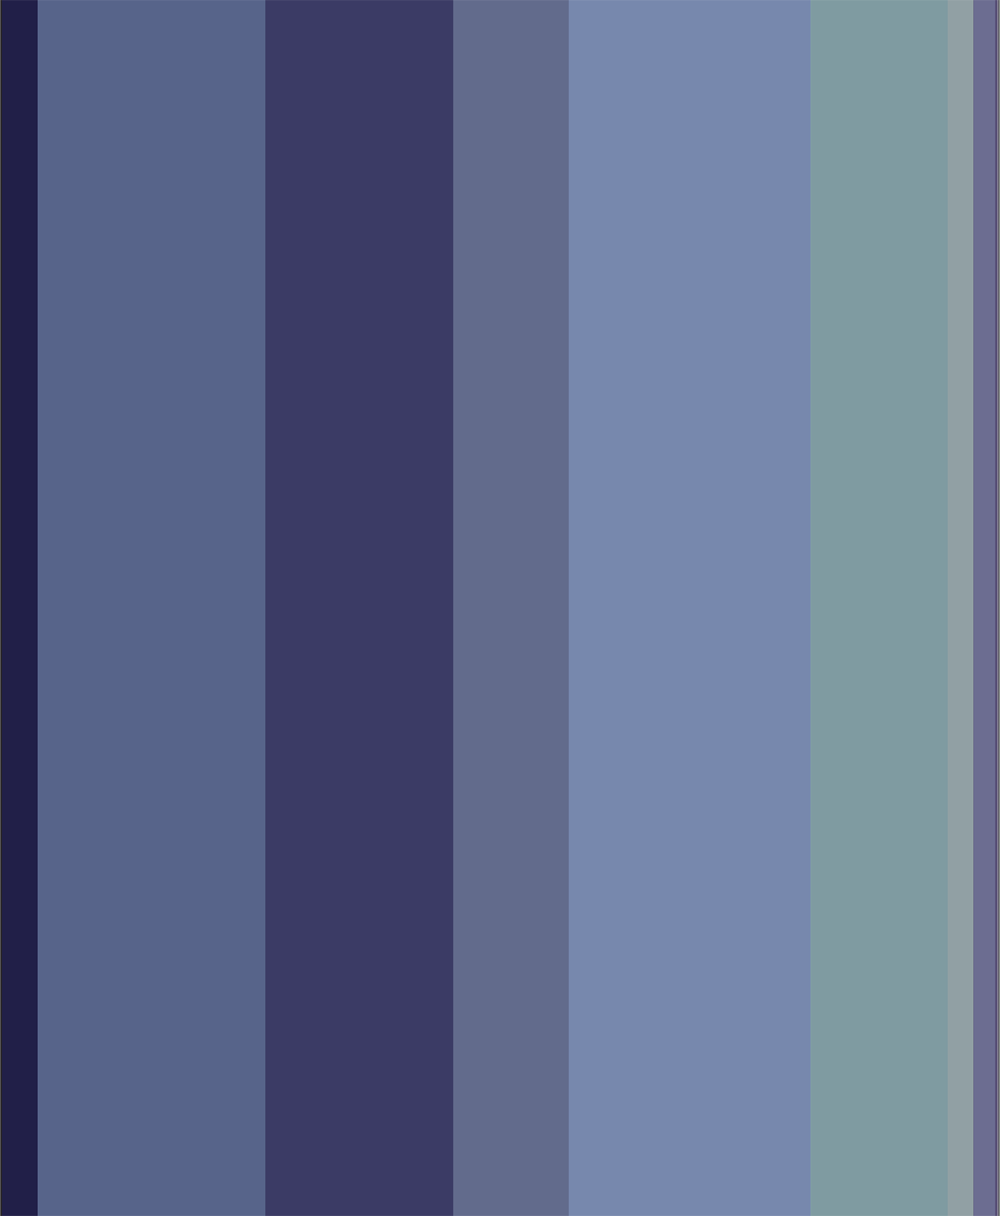 colours-20180707-sky-2.png